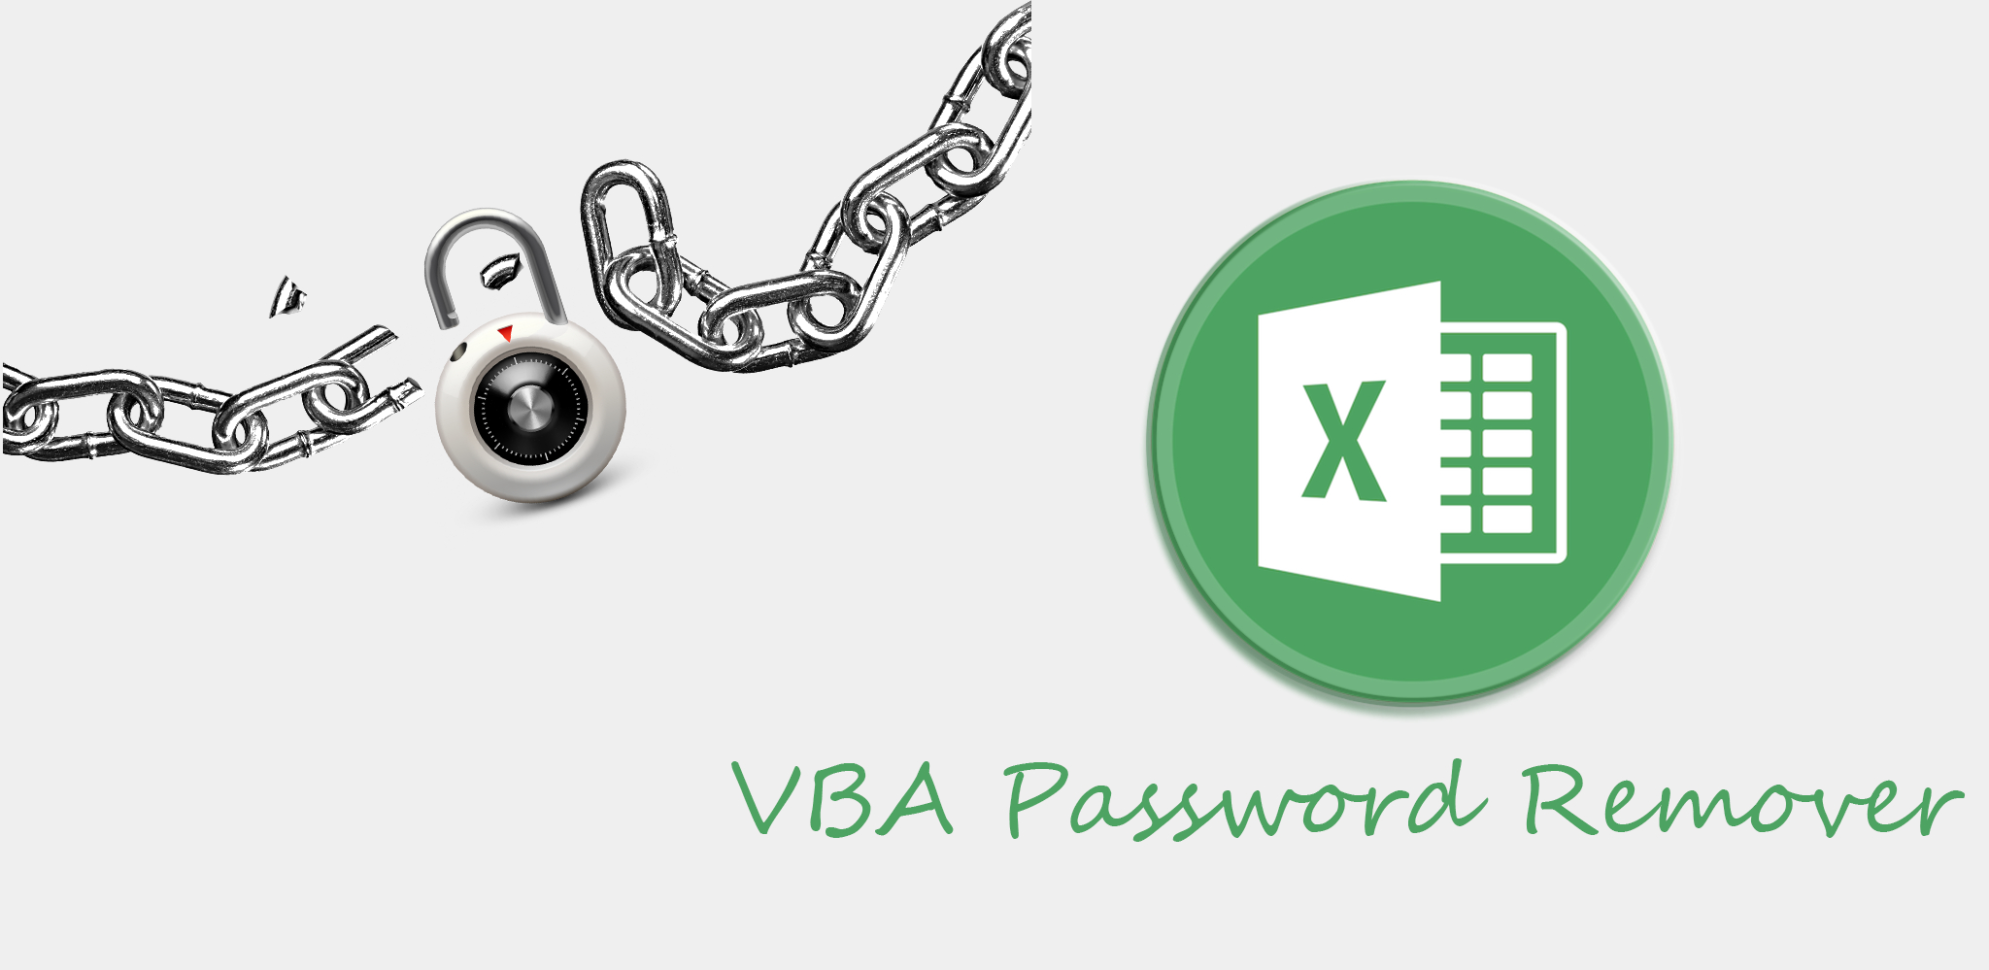 Unlock Excel Spreadsheet Online Regarding Manual Ways To Recover Or Unlock Vba Project Password